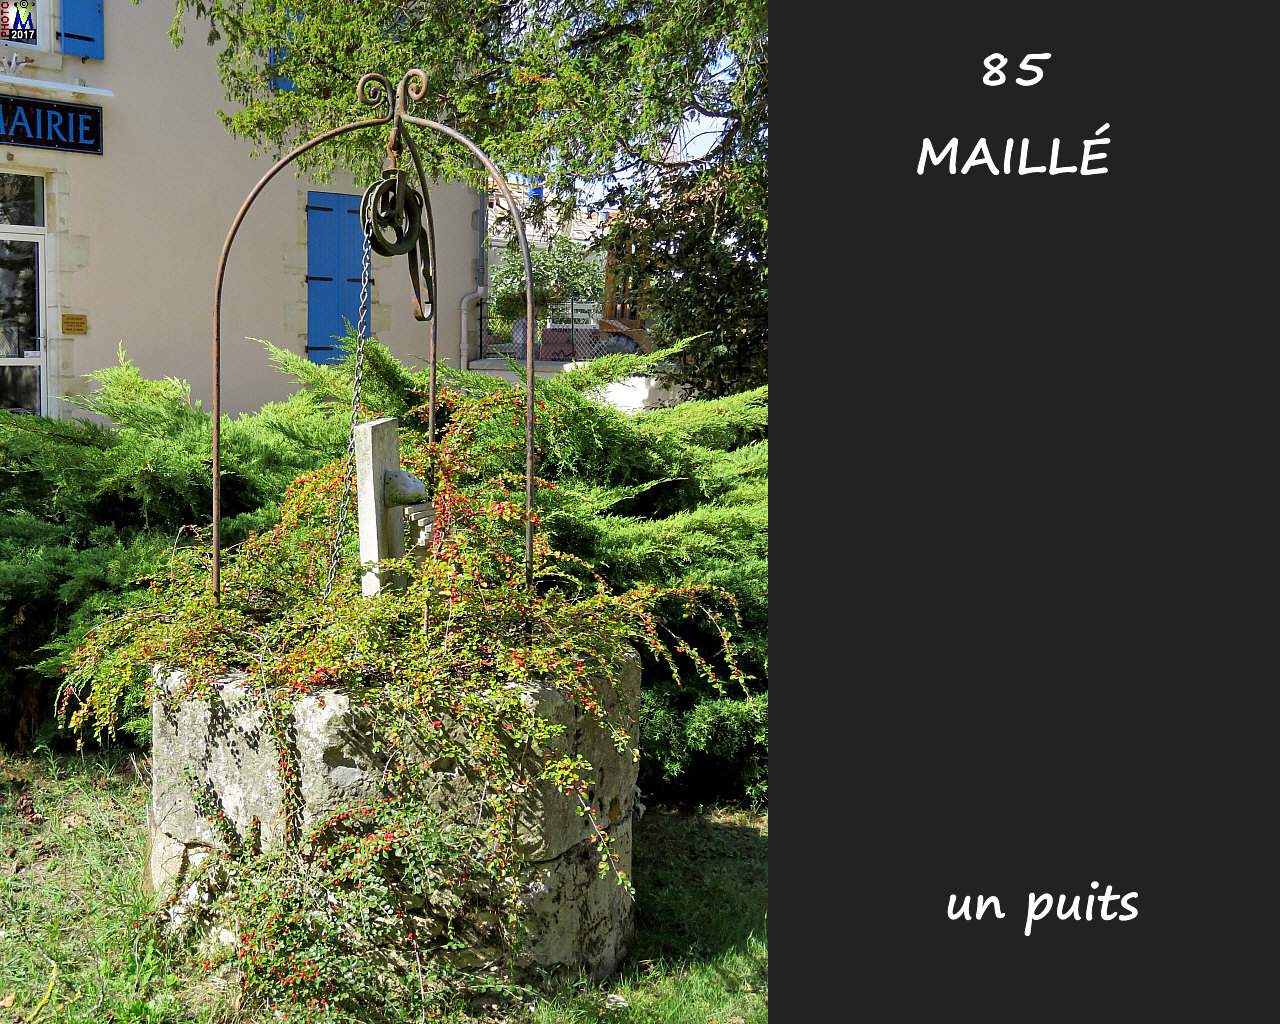 85MAILLE_puits_1020.jpg